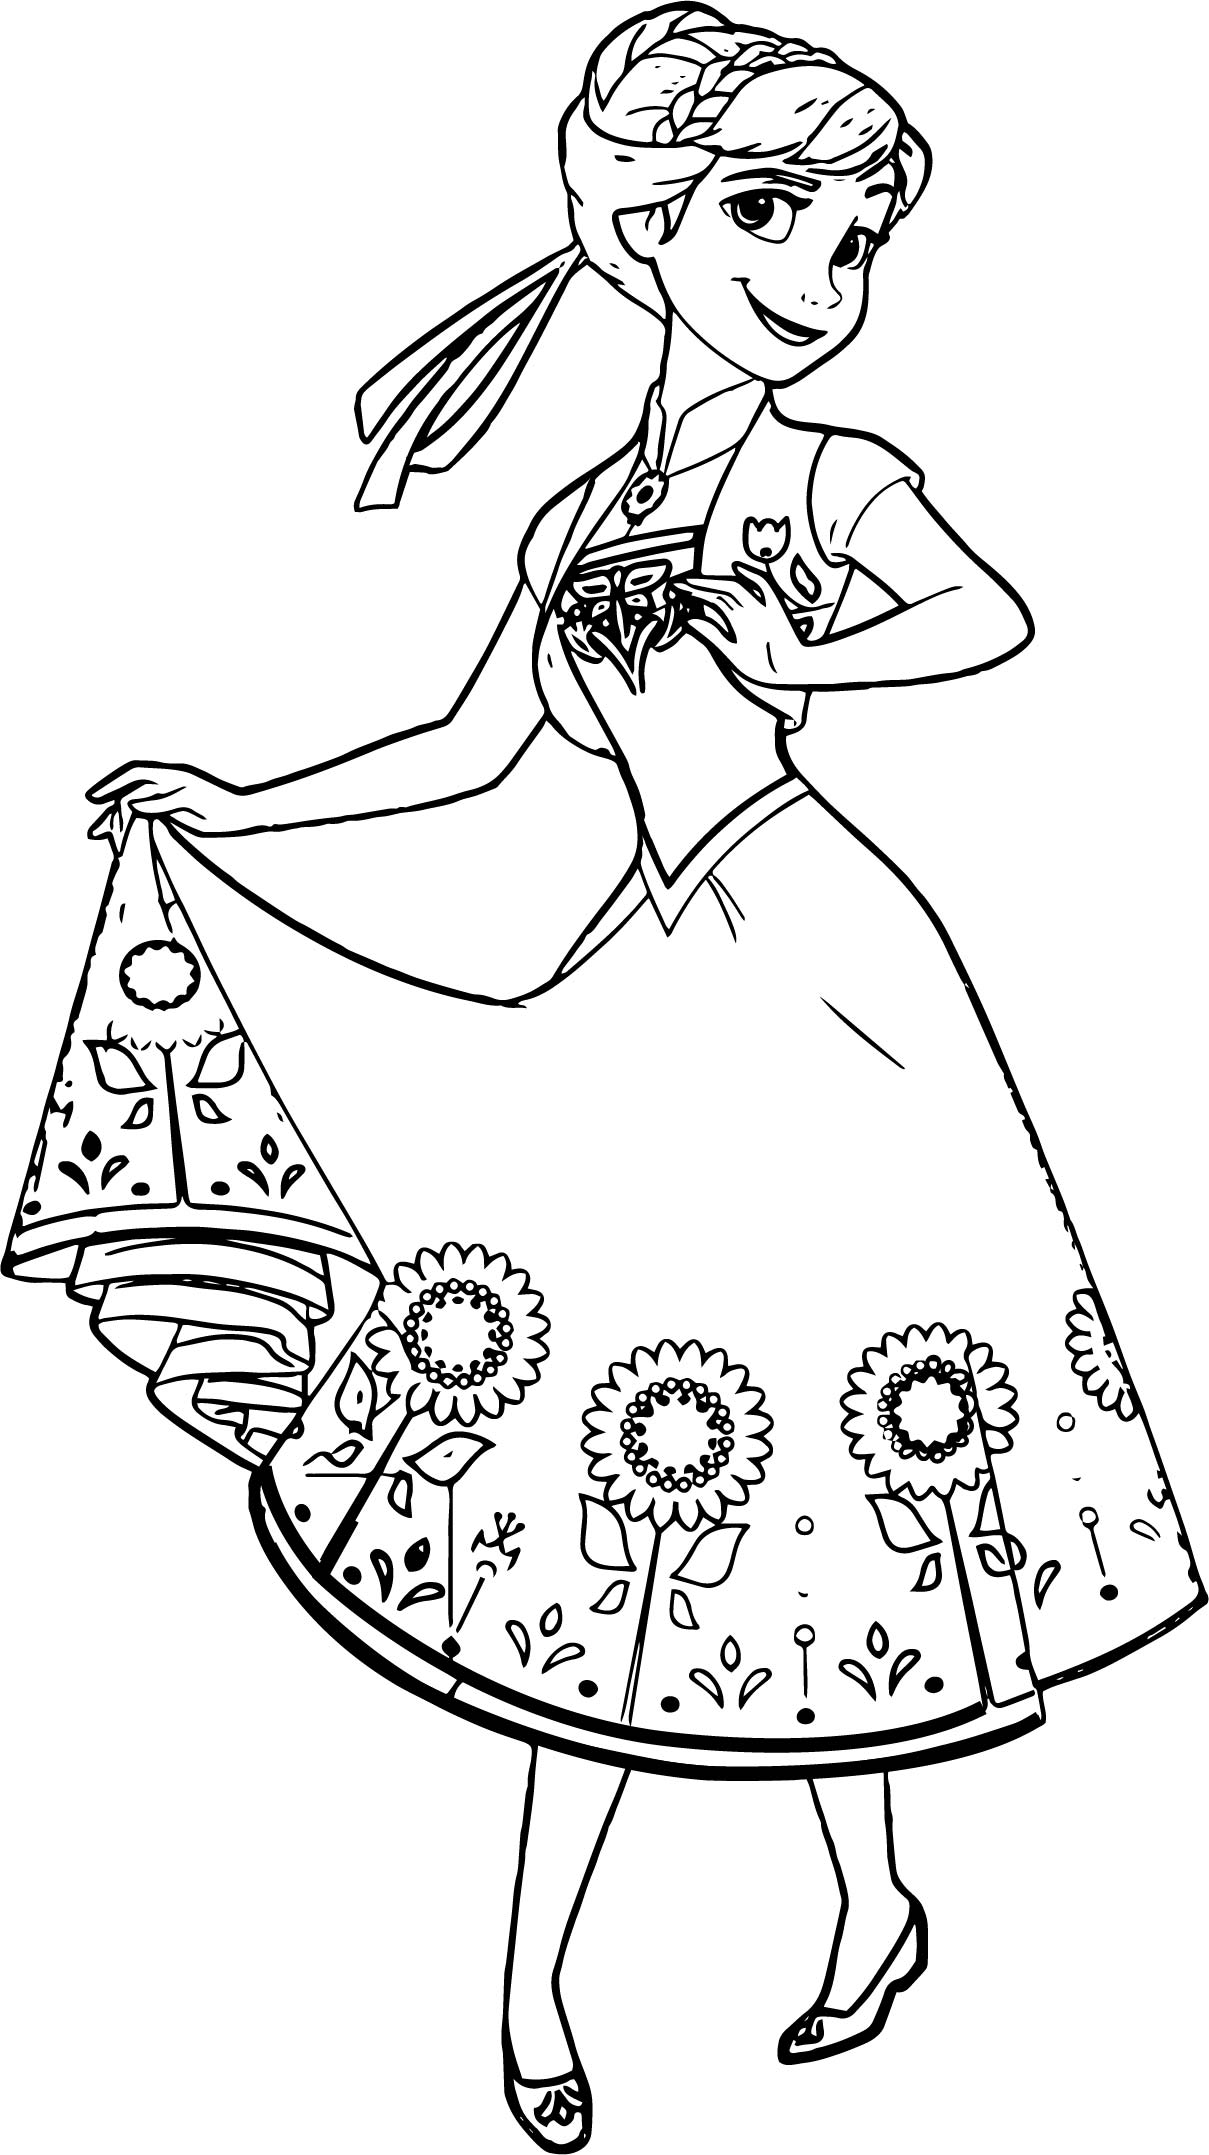 5 Senses Coloring Page